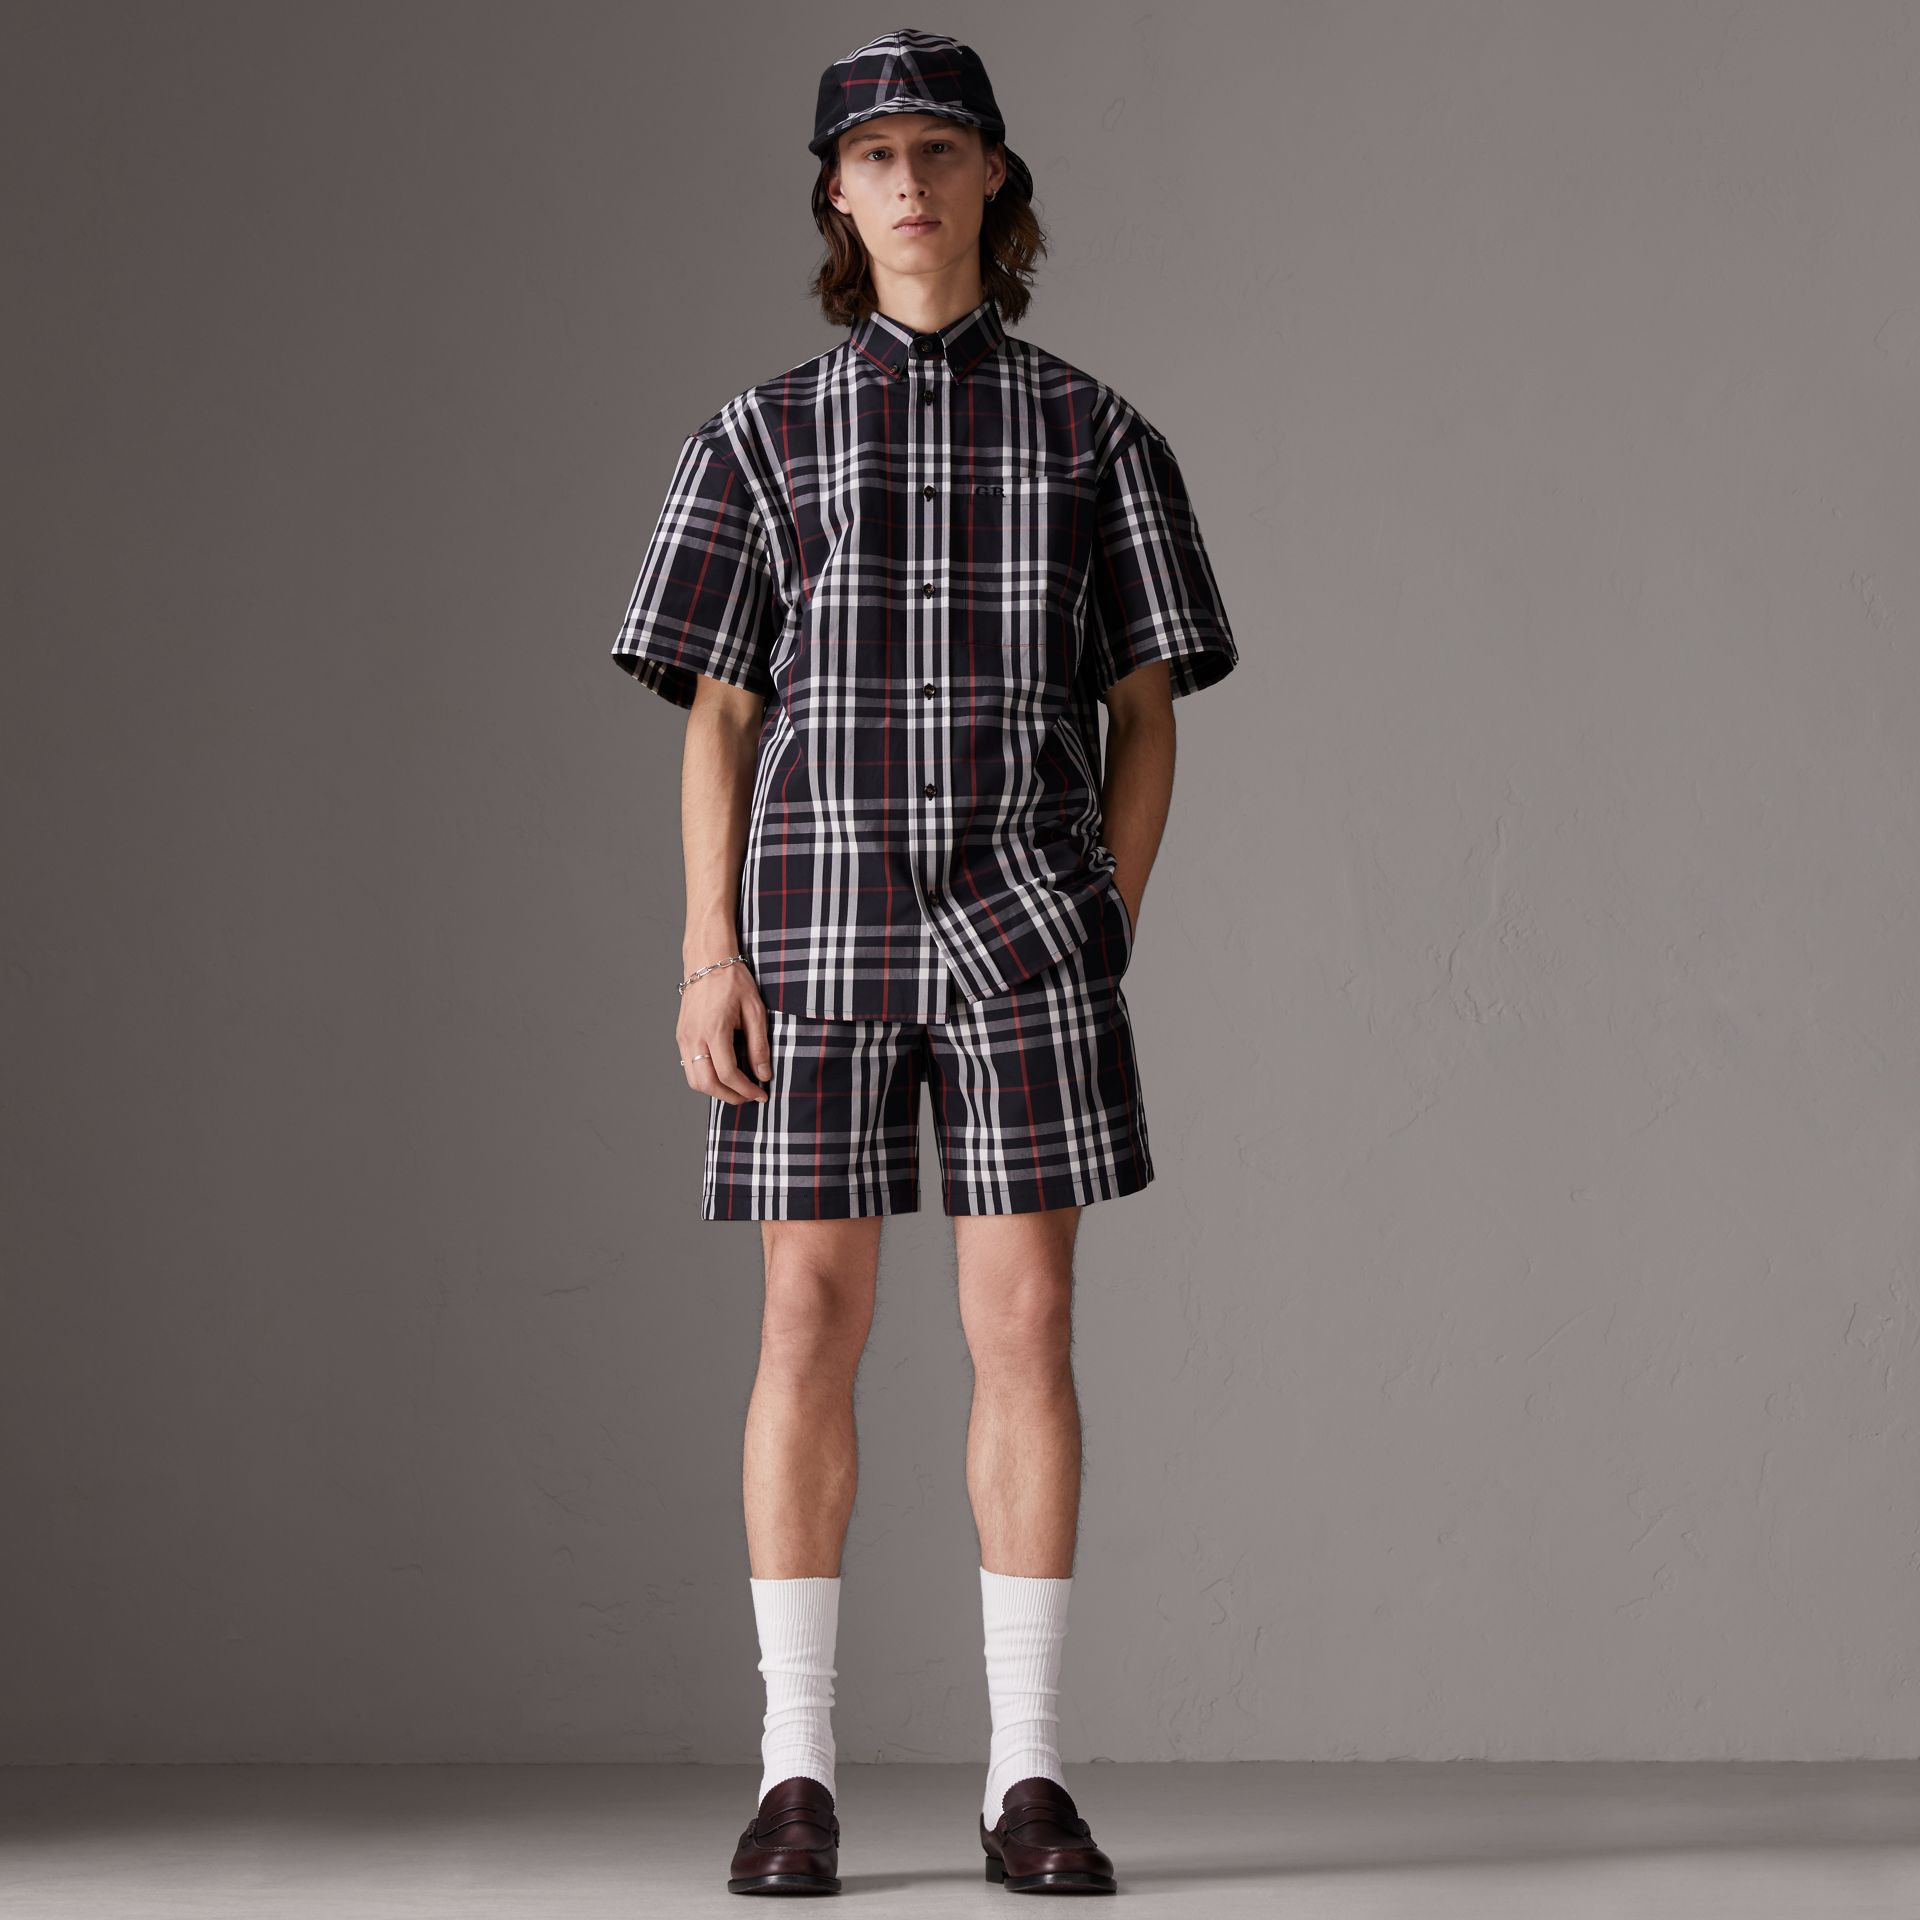 Gosha x Burberry Short-sleeve Check Shirt in Navy - Men | Burberry - gallery image 2